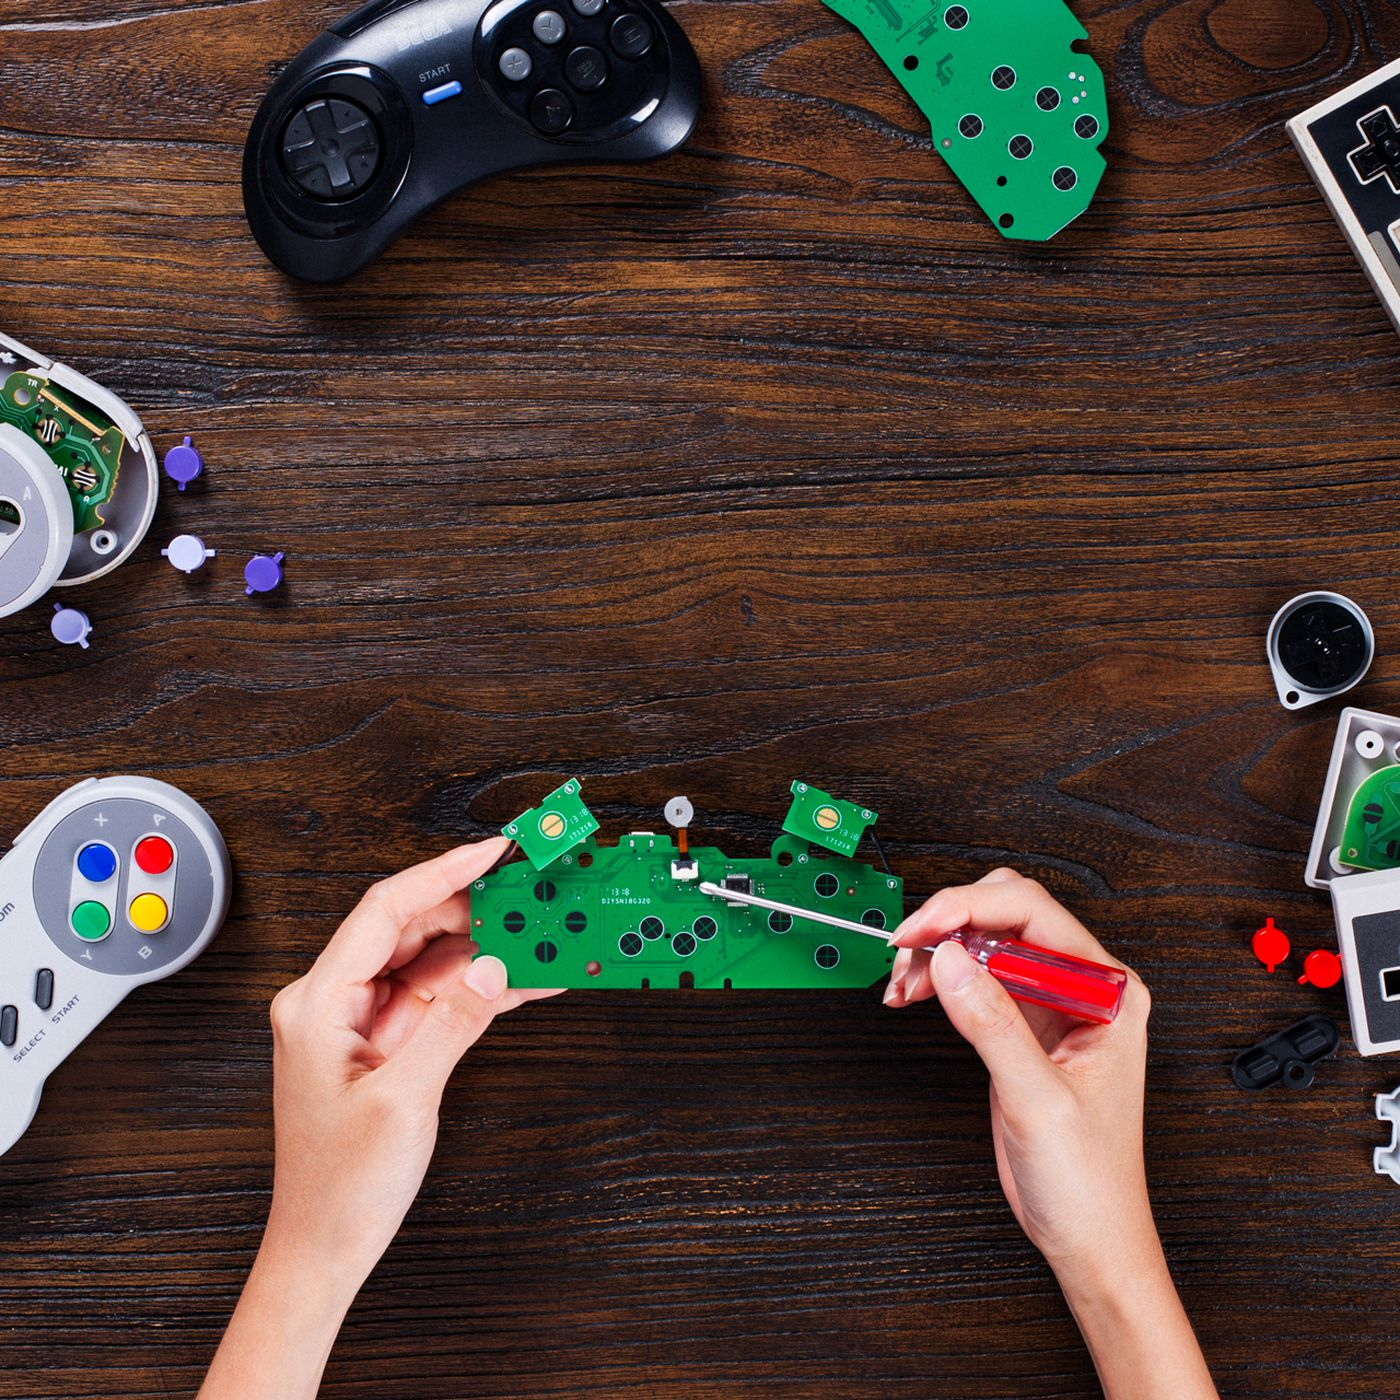 theverge.com - Andrew Webster - These $20 DIY kits make classic controllers wireless